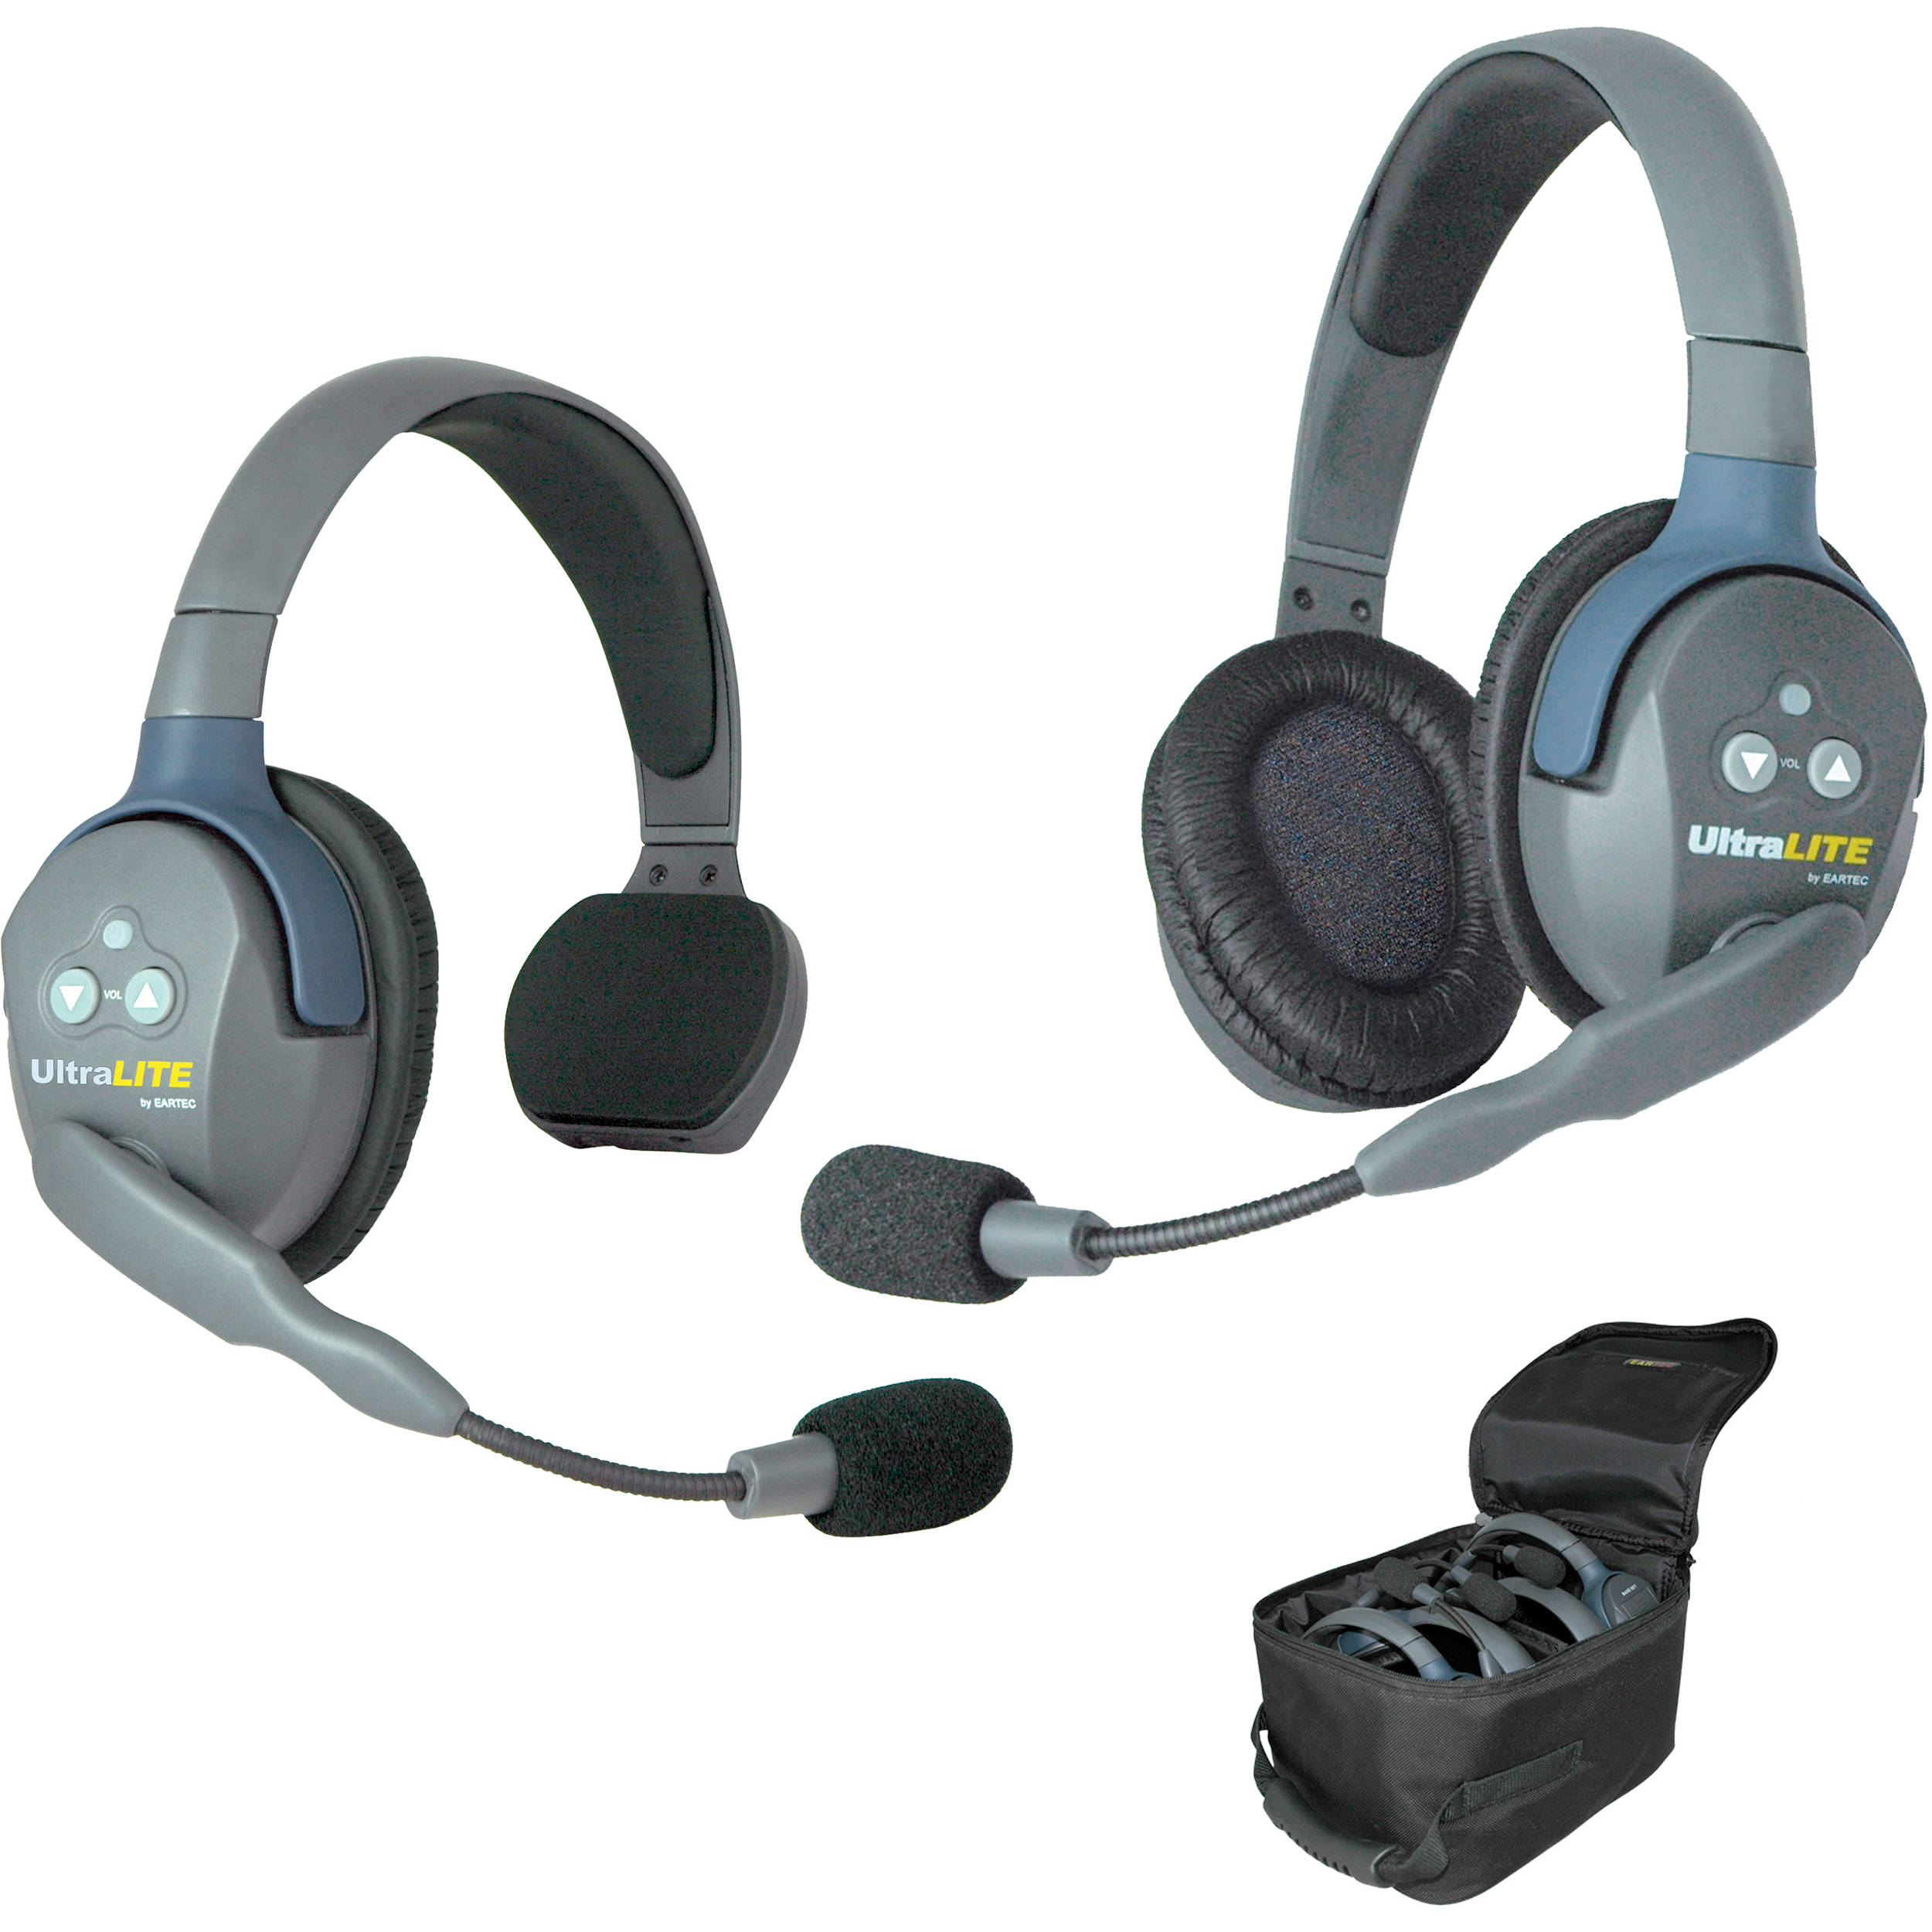 EARTEC ULTRALITE 1 SINGLE + 1 DOUBLE HEADSET HD